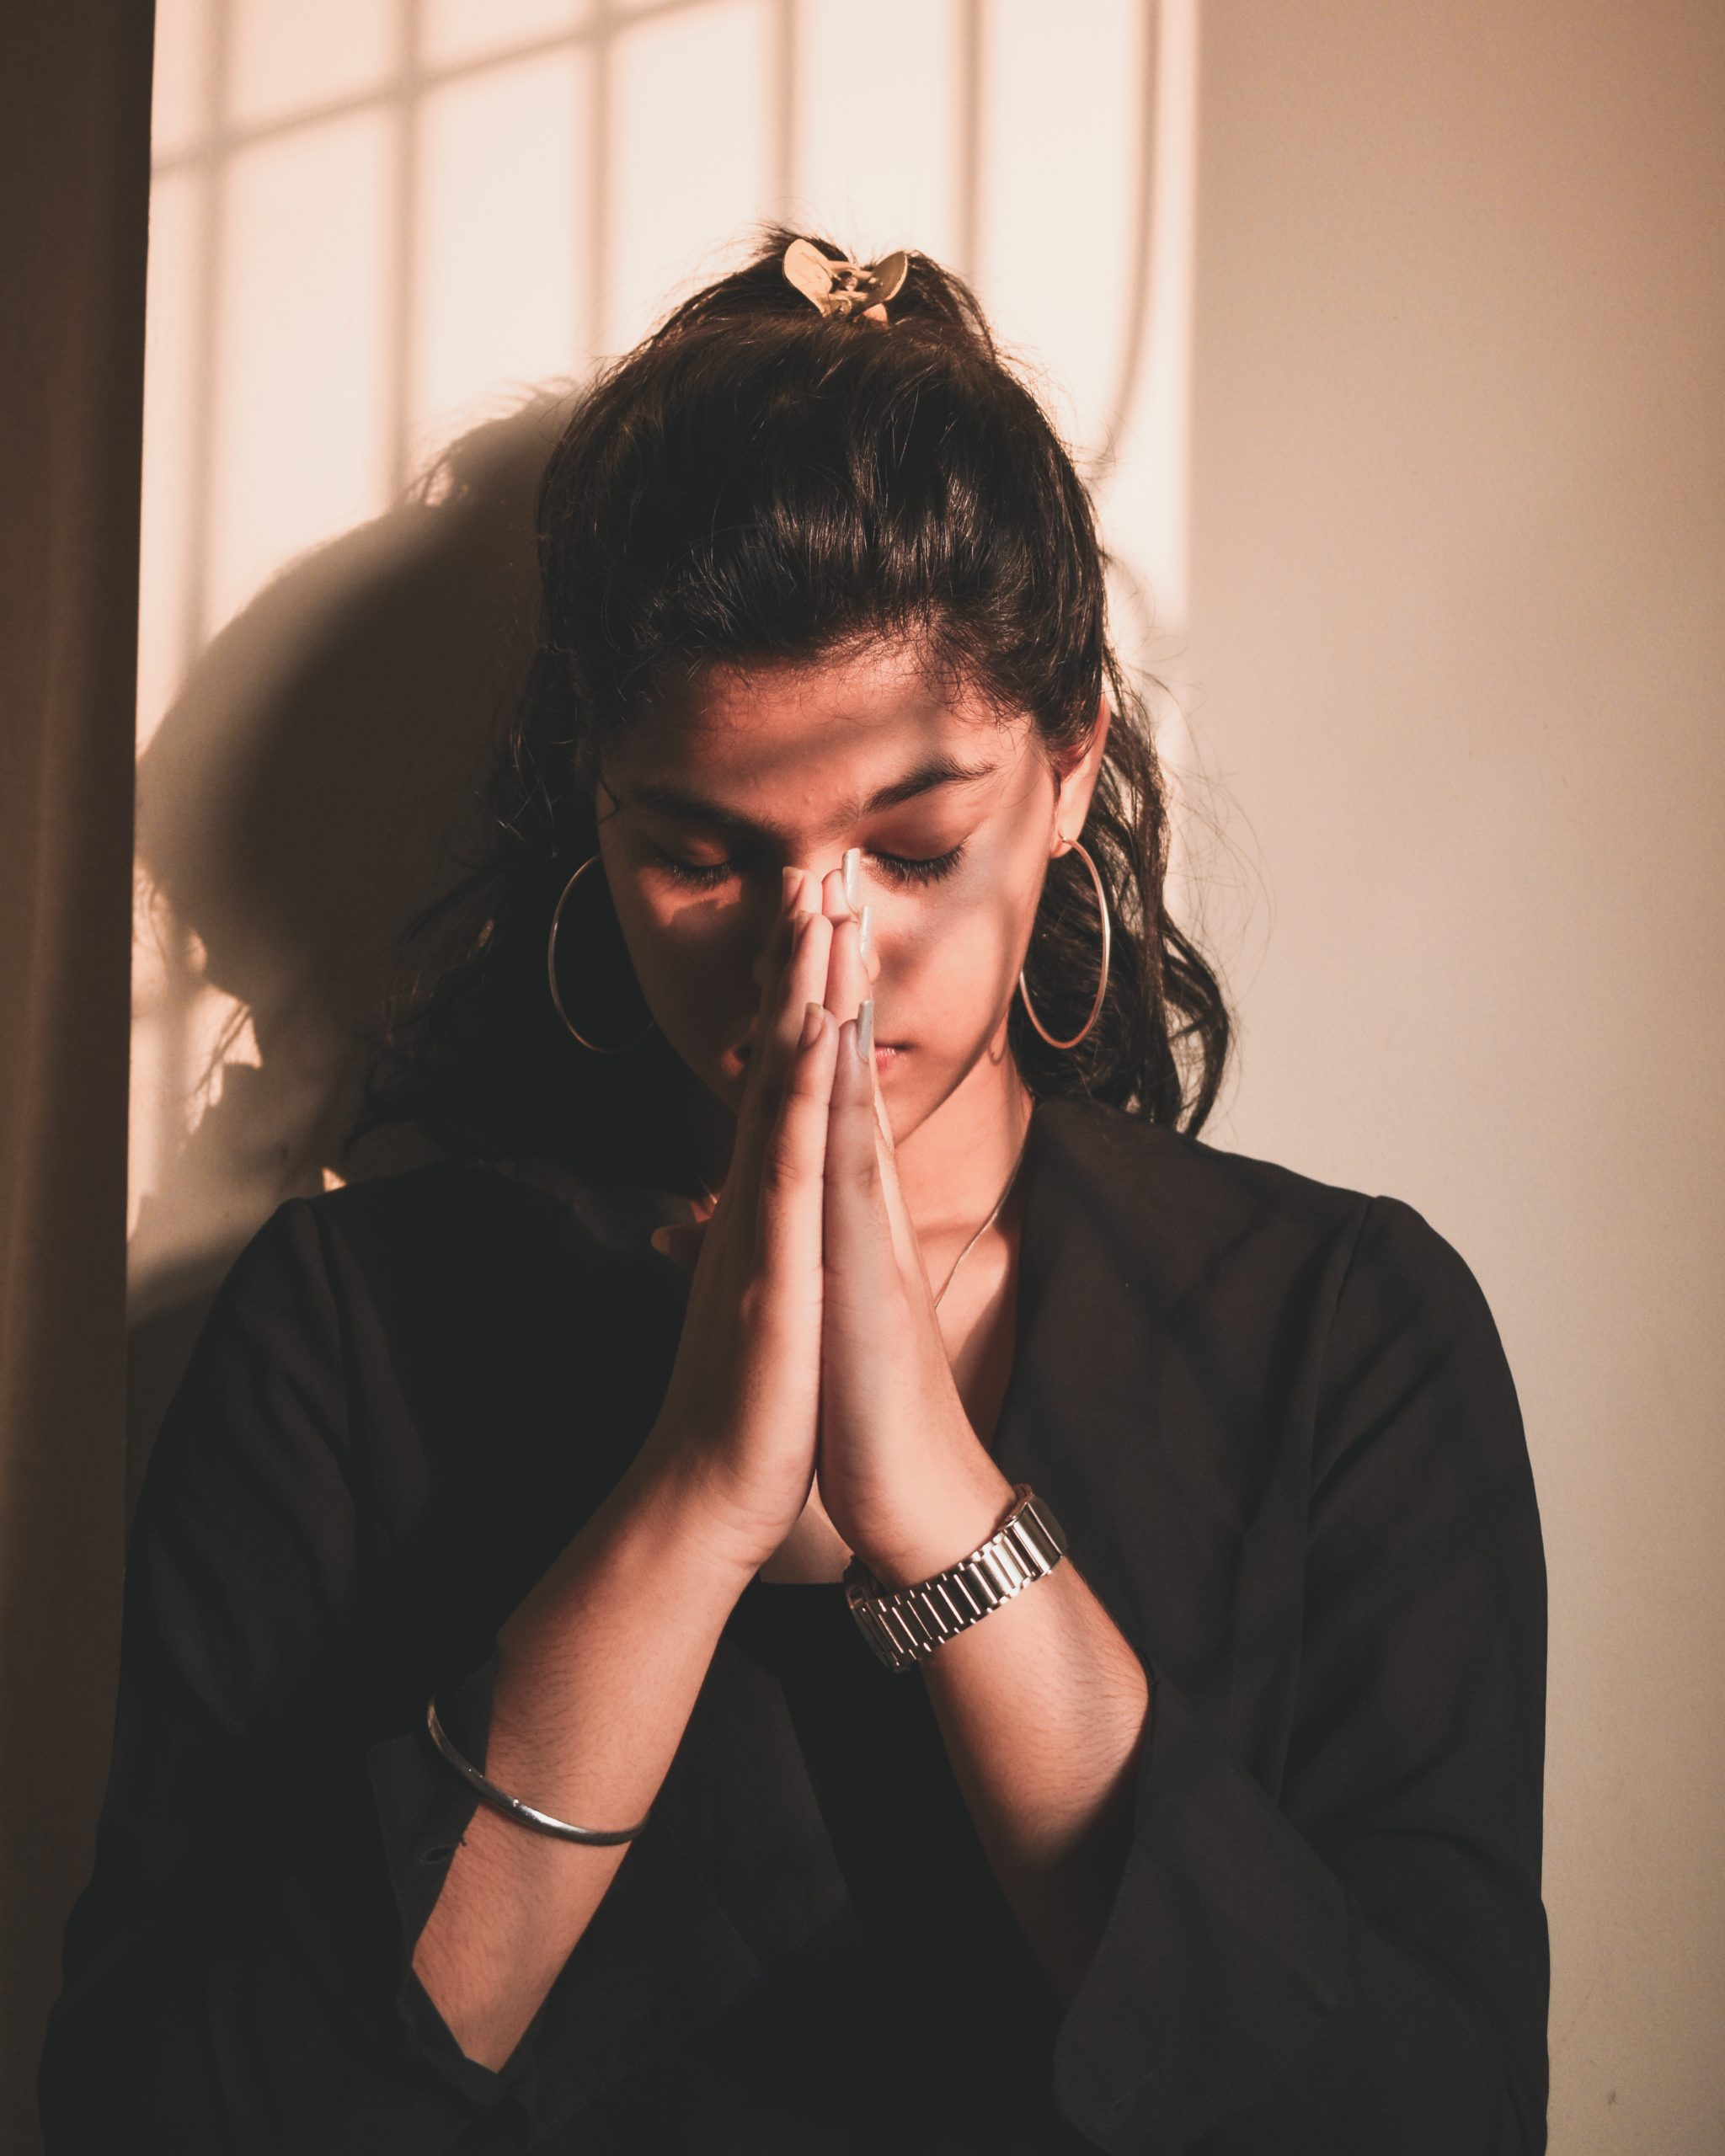 photo-of-woman-praying-4069440